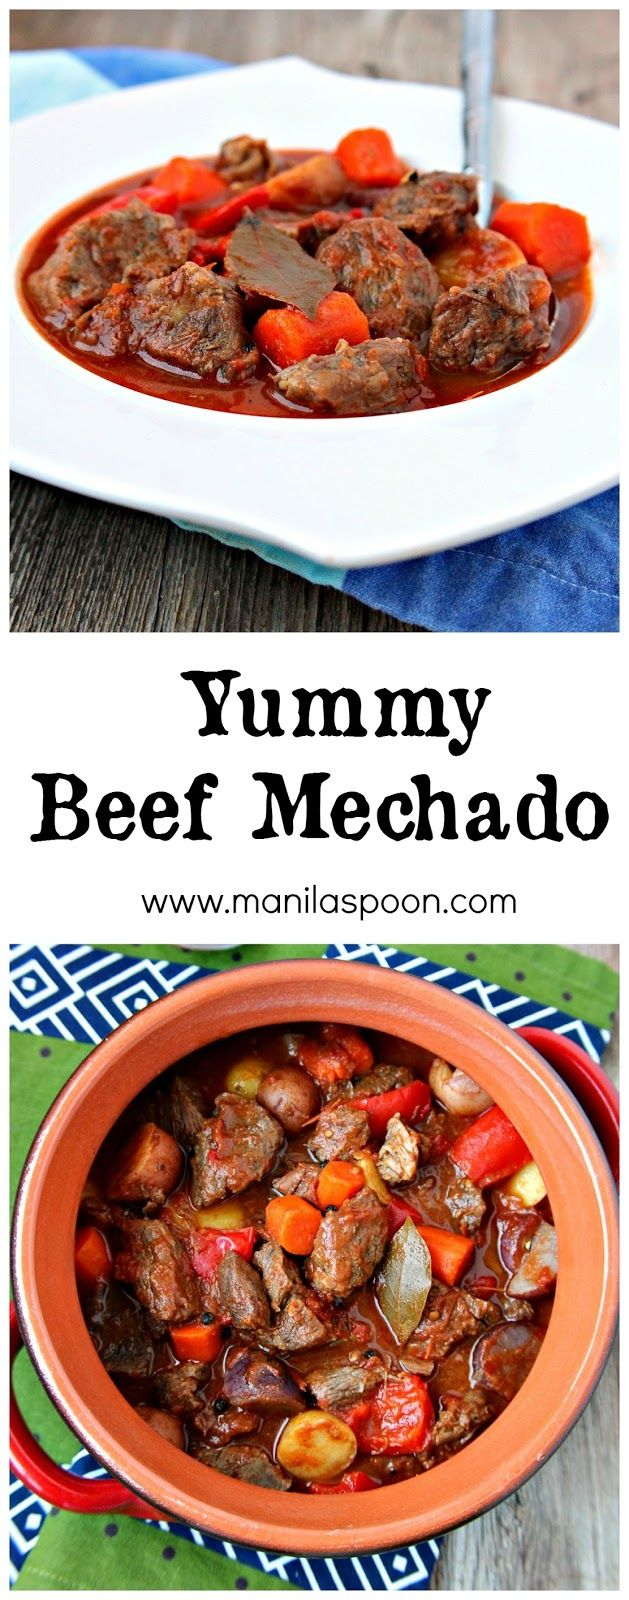 The first time I made this, hubby said it became his instant favorite! Deliciously tender chunks of beef slowly simmered in tomato sauce flavored with Asian seasonings. Your taste buds are treated to a savory, tangy and sweet explosion of flavors! #beef #mechado